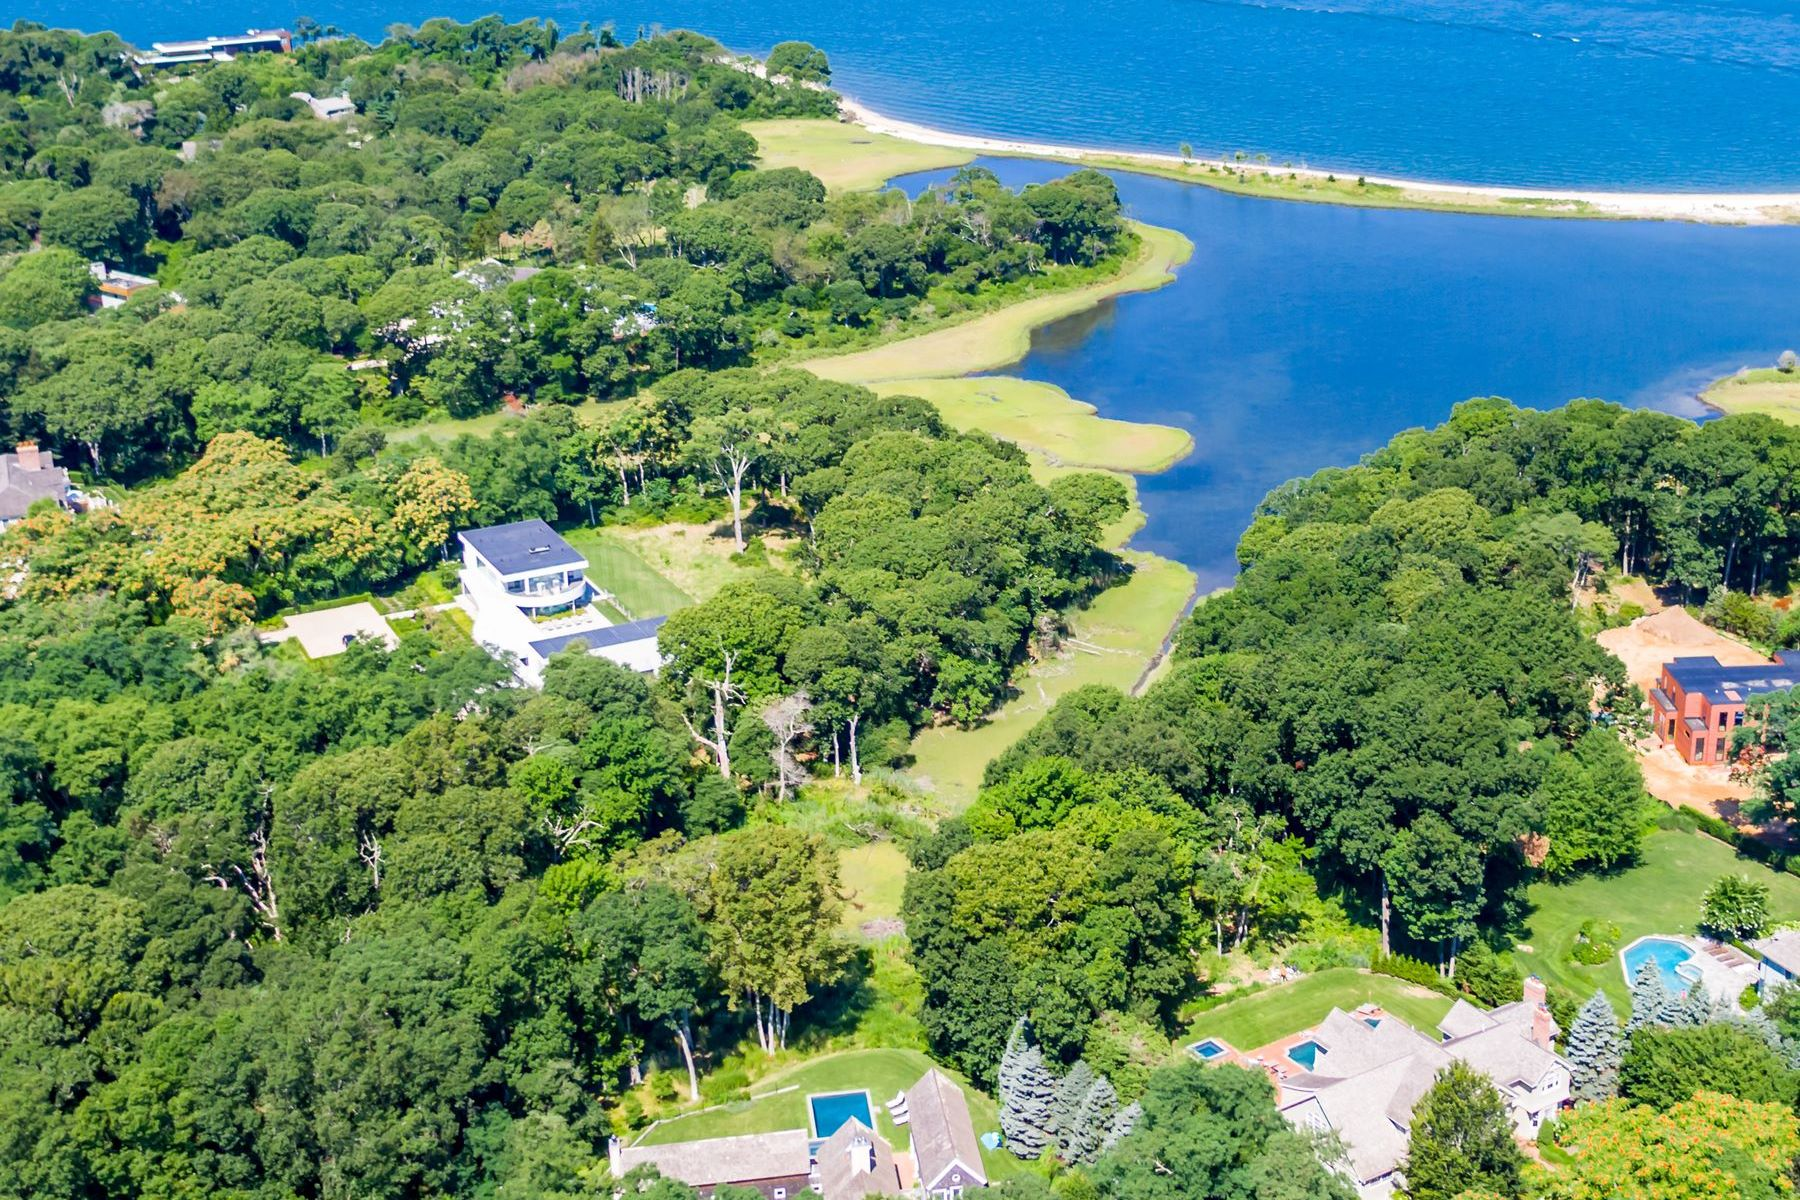 Single Family Homes for Active at SAG HARBOR WATERFRONT COMPOUND RETREAT 11 & 15 Ezekills Hollow Sag Harbor, New York 11963 United States